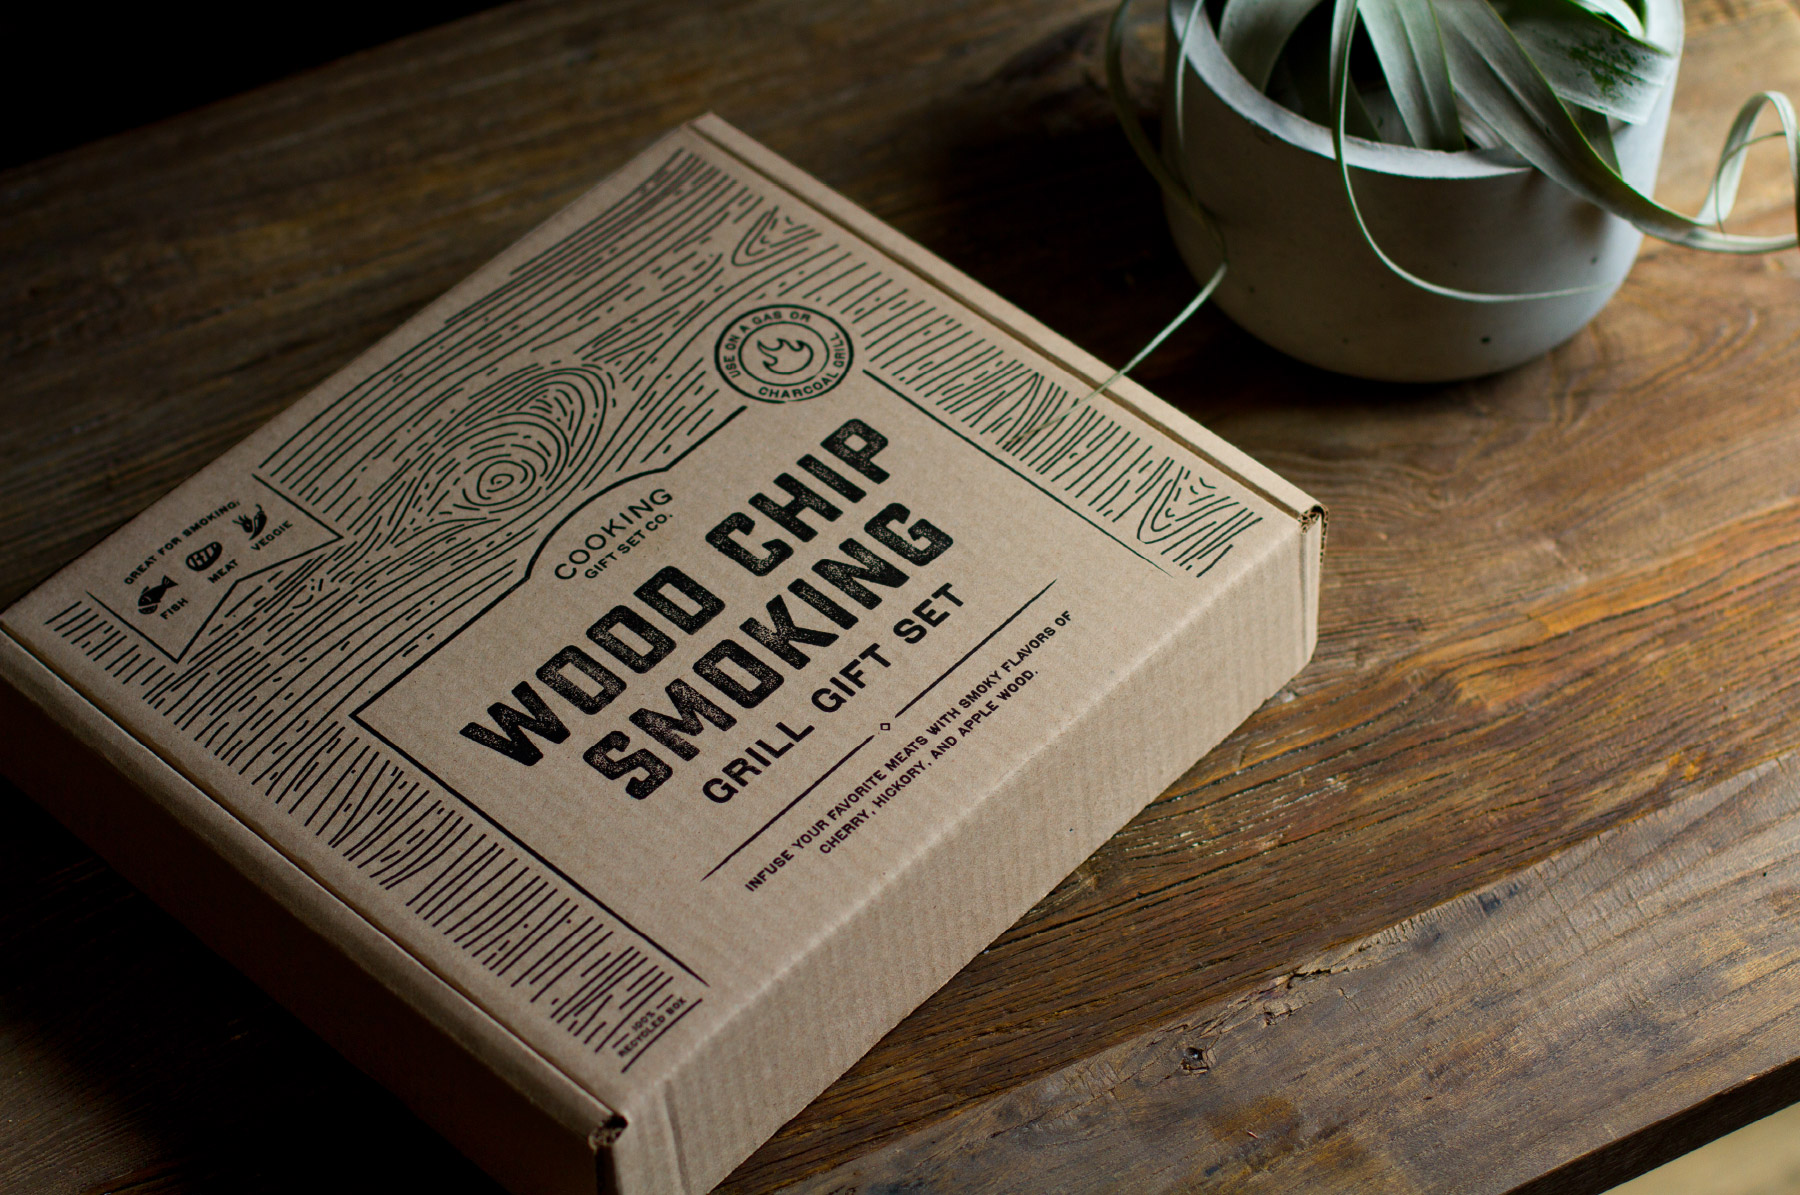 Wood inspired cooking kit packaging design